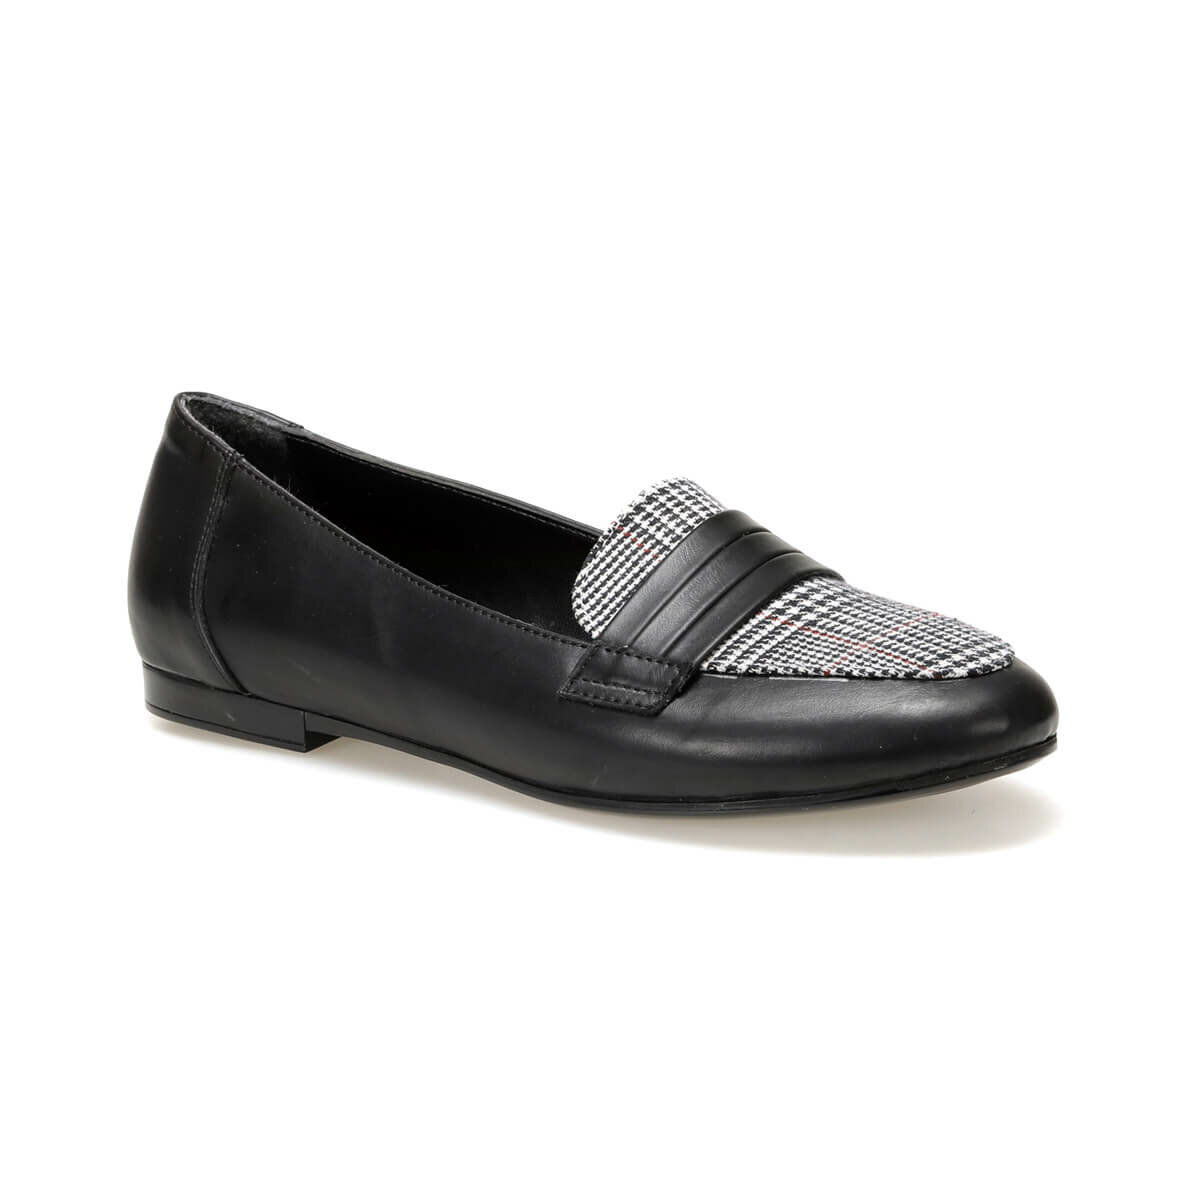 FLO DW19011 Black Women Loafer Shoes Miss F